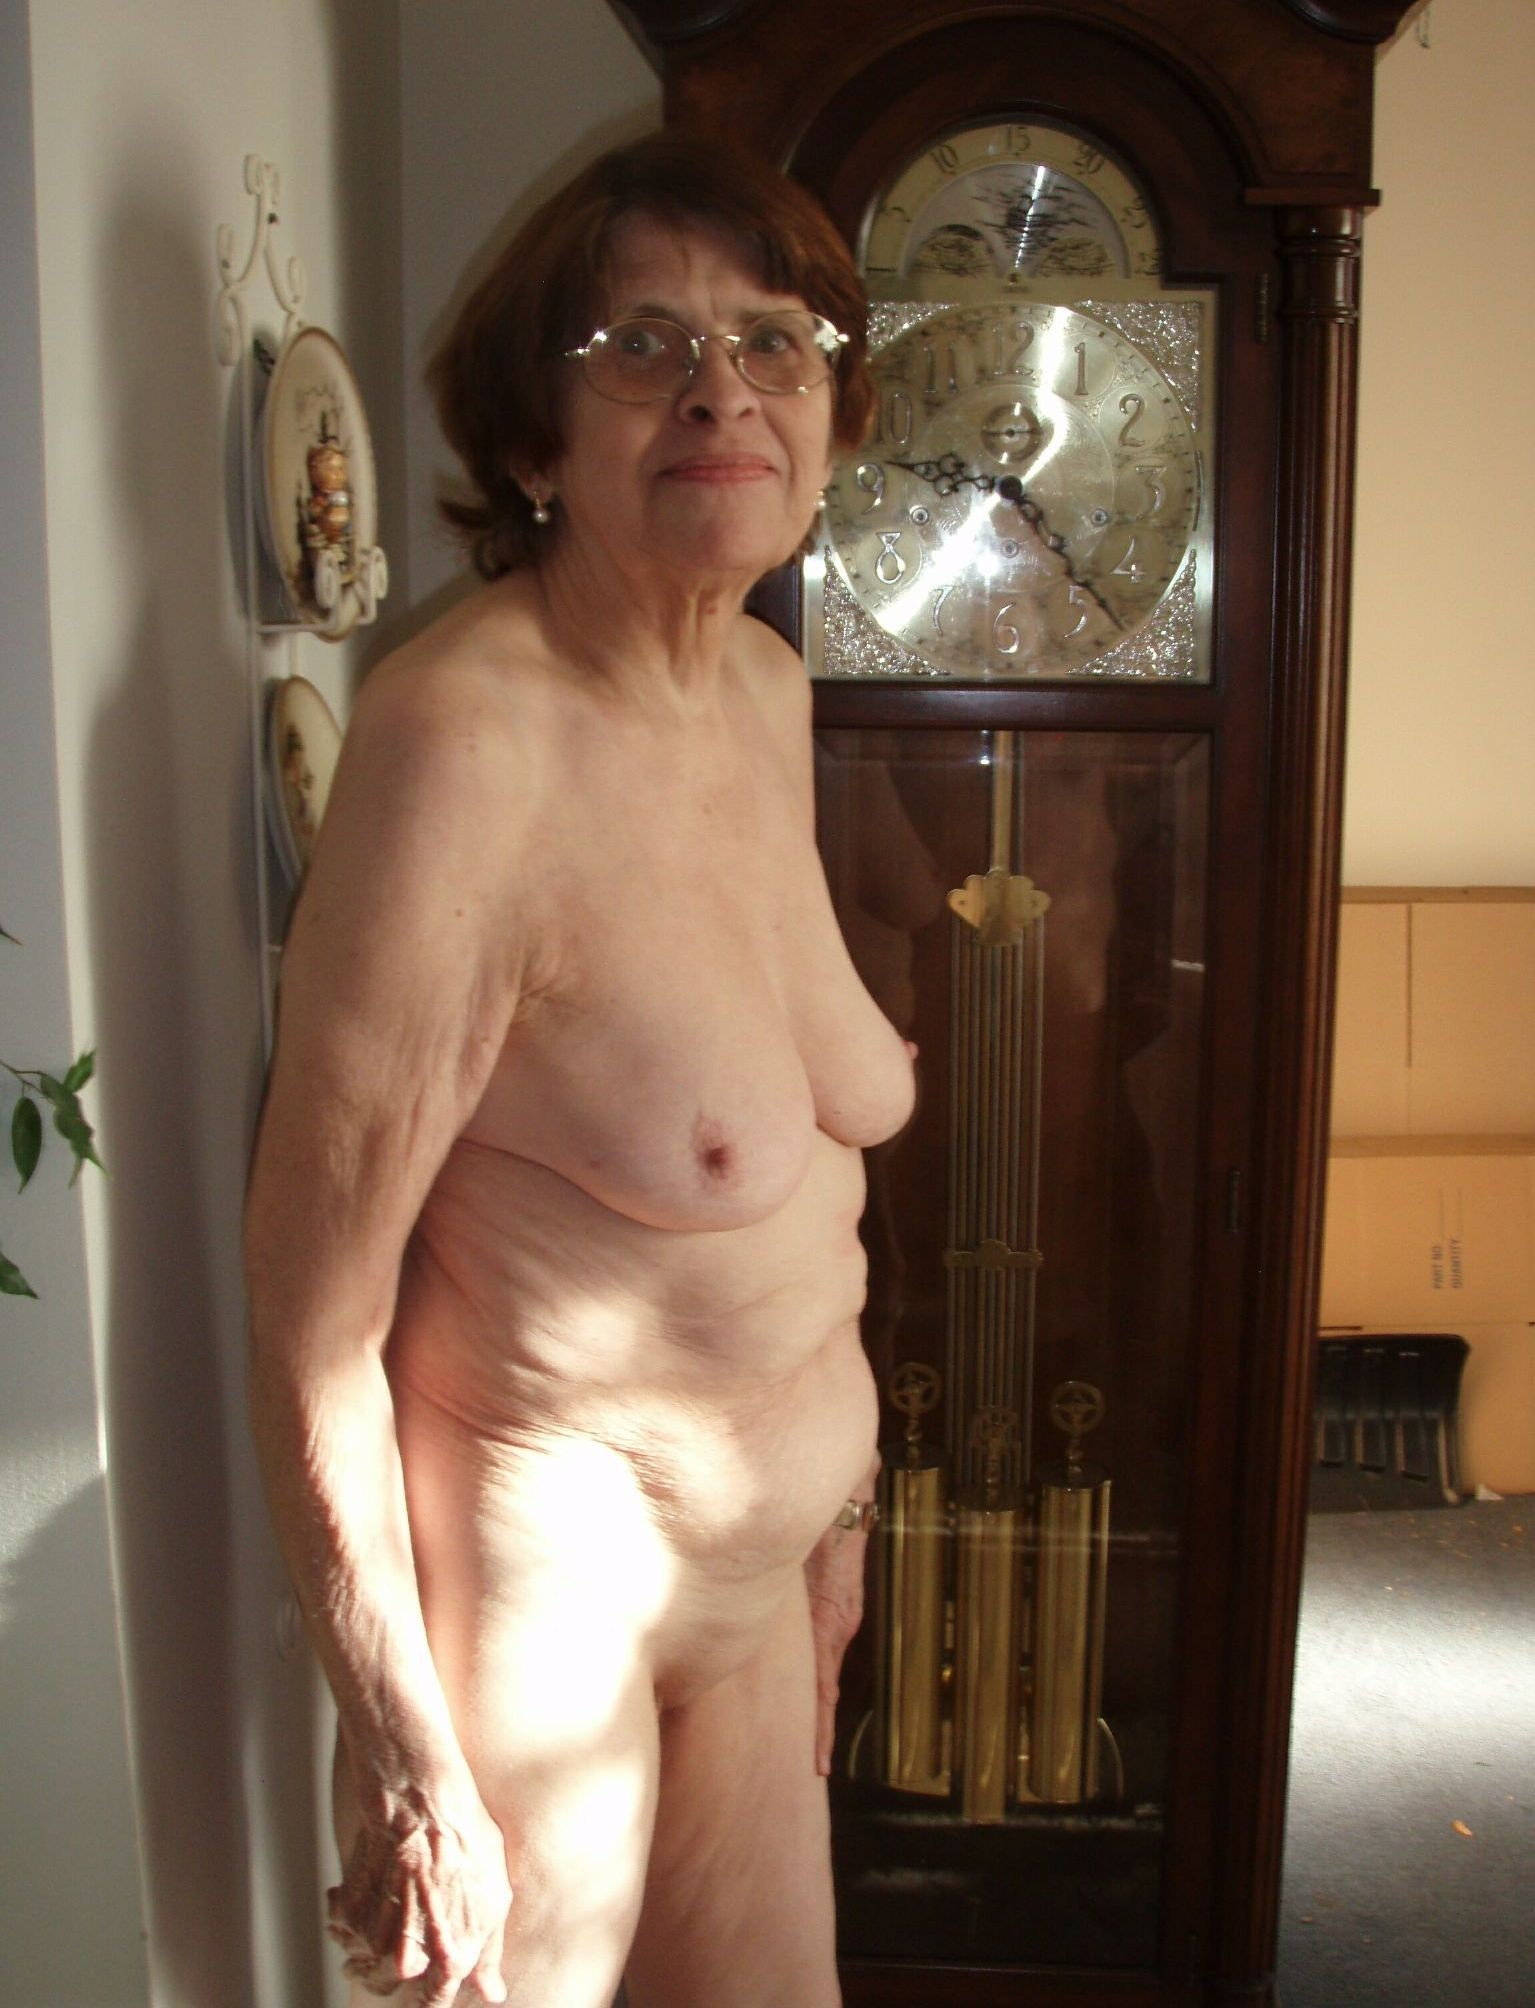 Ugly woman with sexy bodies nude, granny young men sex vids